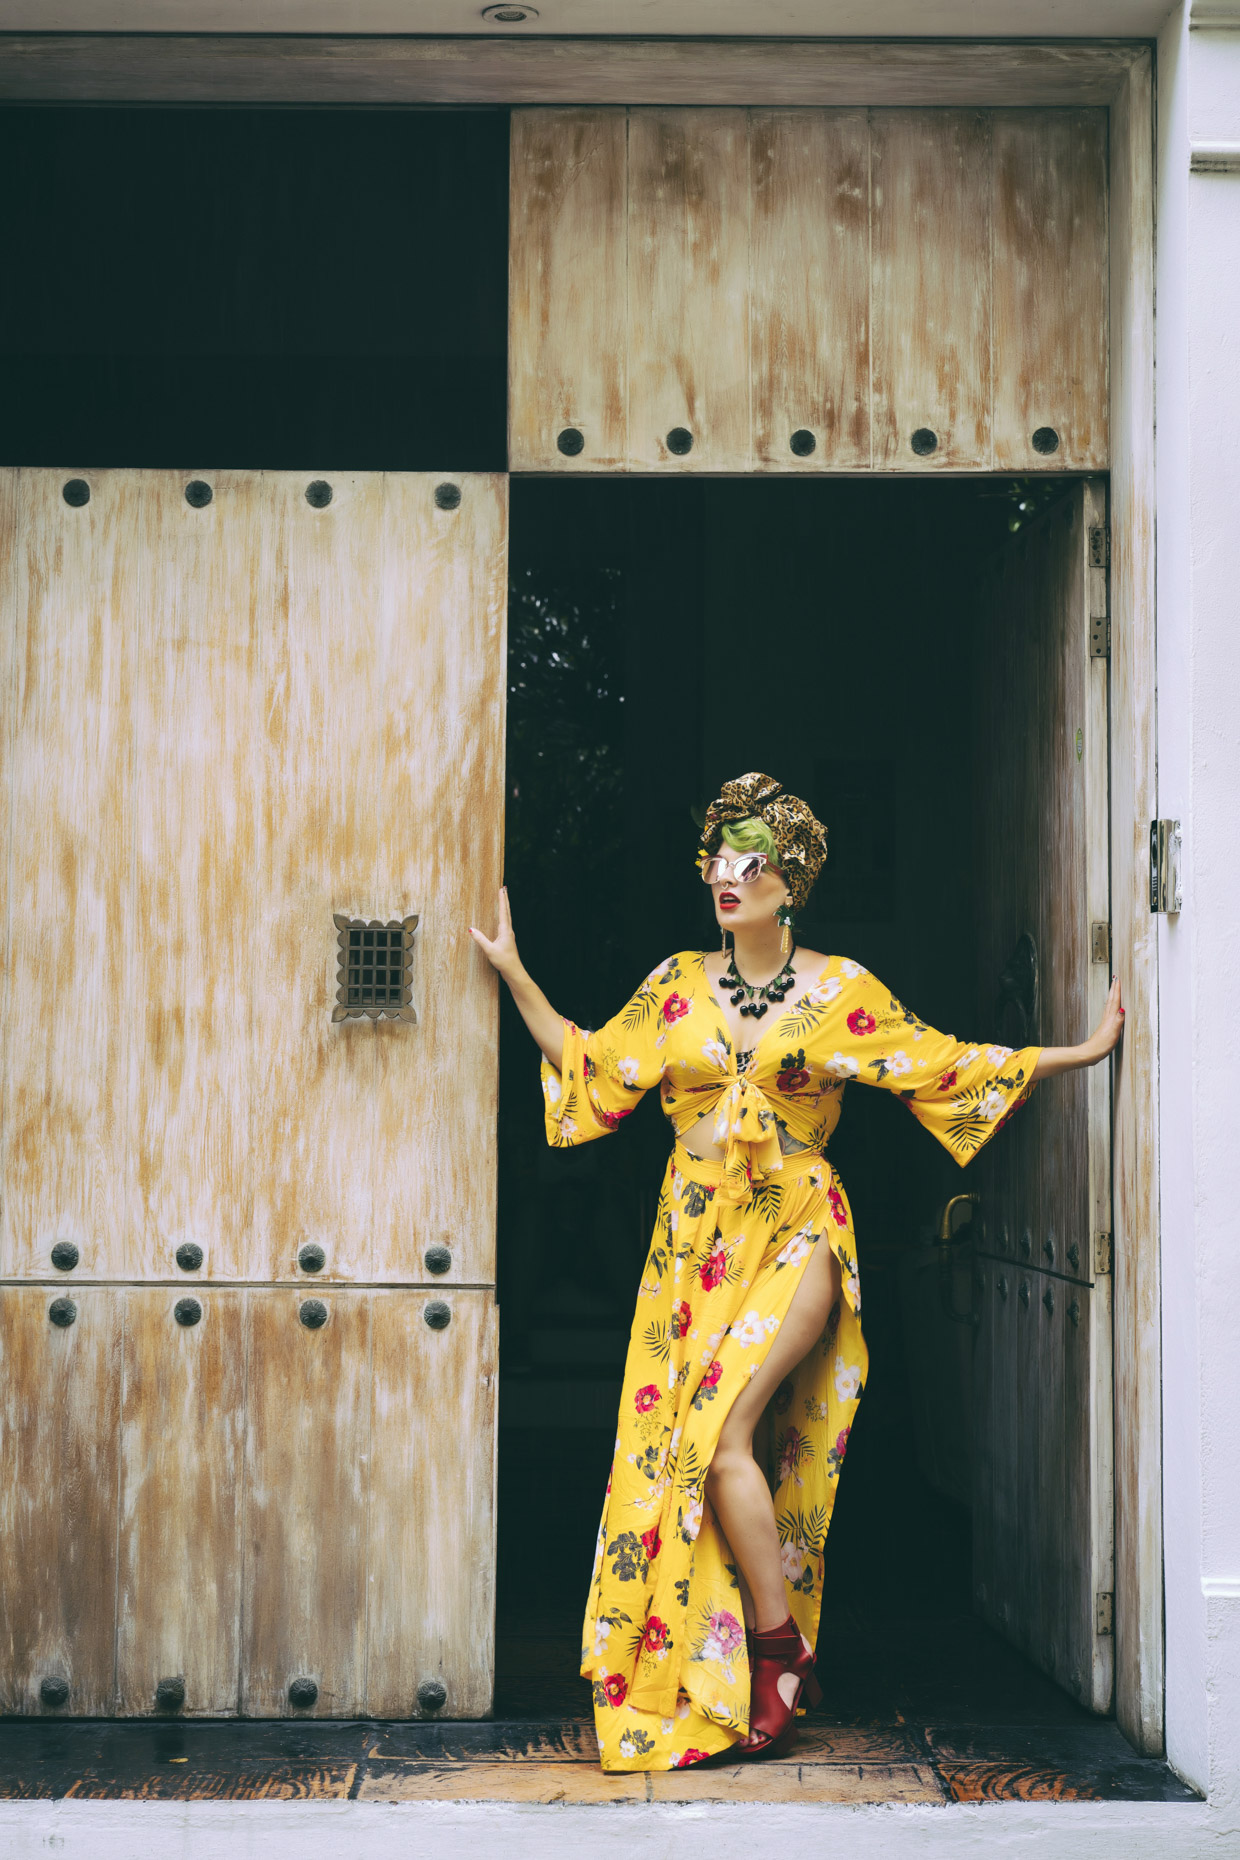 Woman in long floral dress and leopard print headwrap standing in doorway